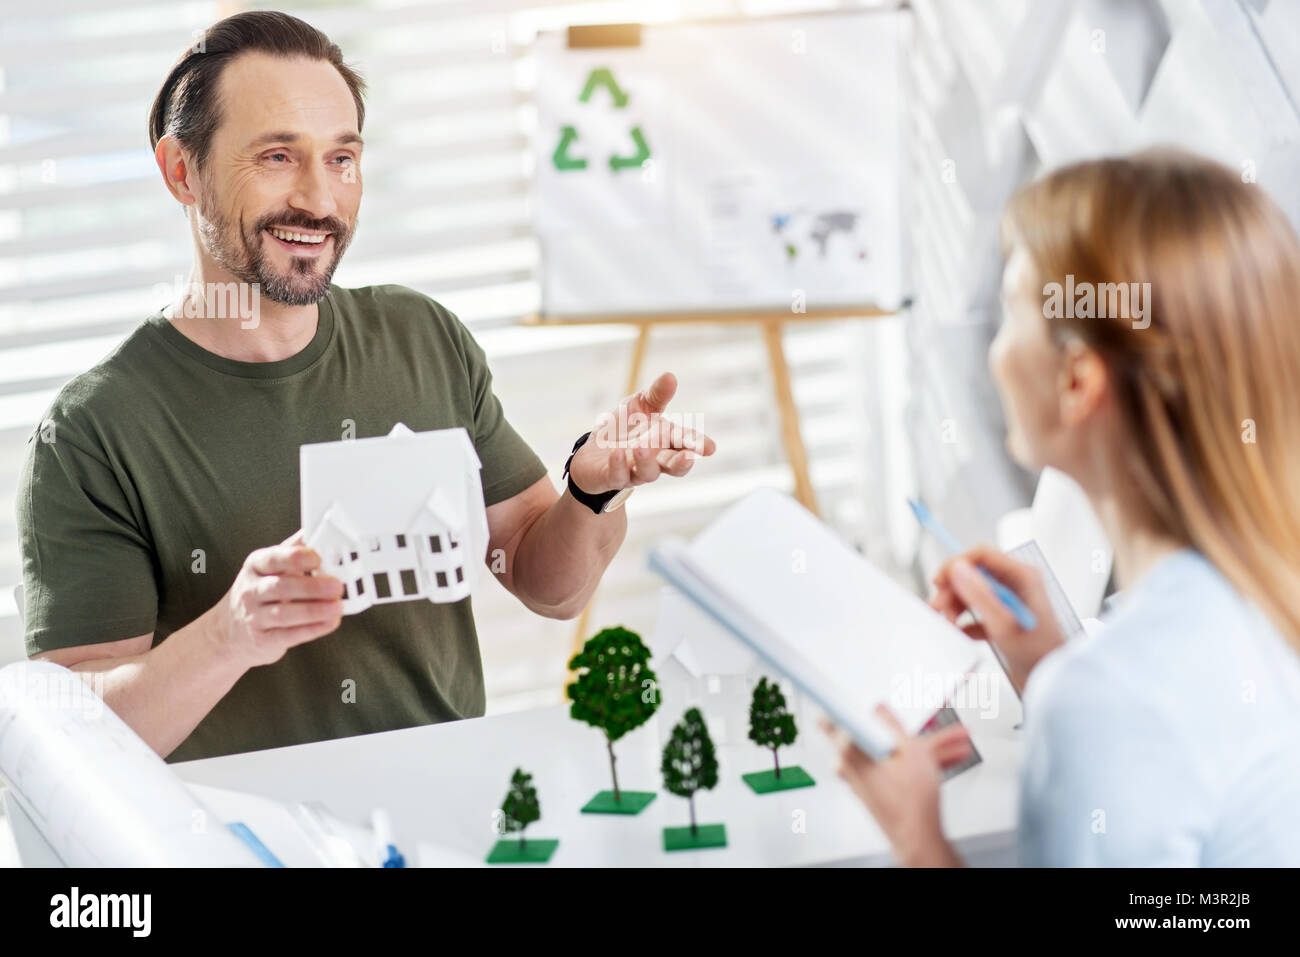 Happy man discussing eco-friendly project with his colleague - Stock Image